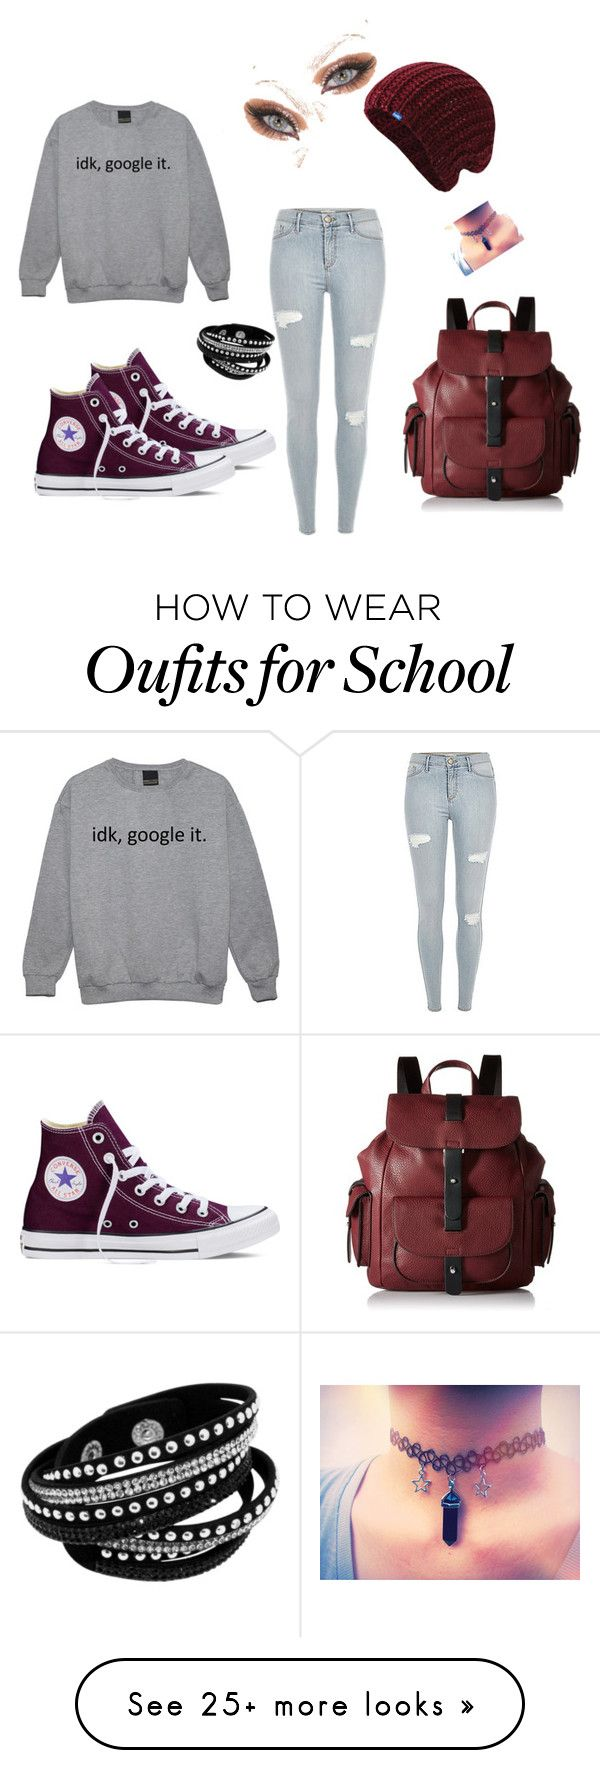 """Laid back school"" by cecemarine13 on Polyvore featuring Converse, Keds, Kenneth Cole Reaction and casual"